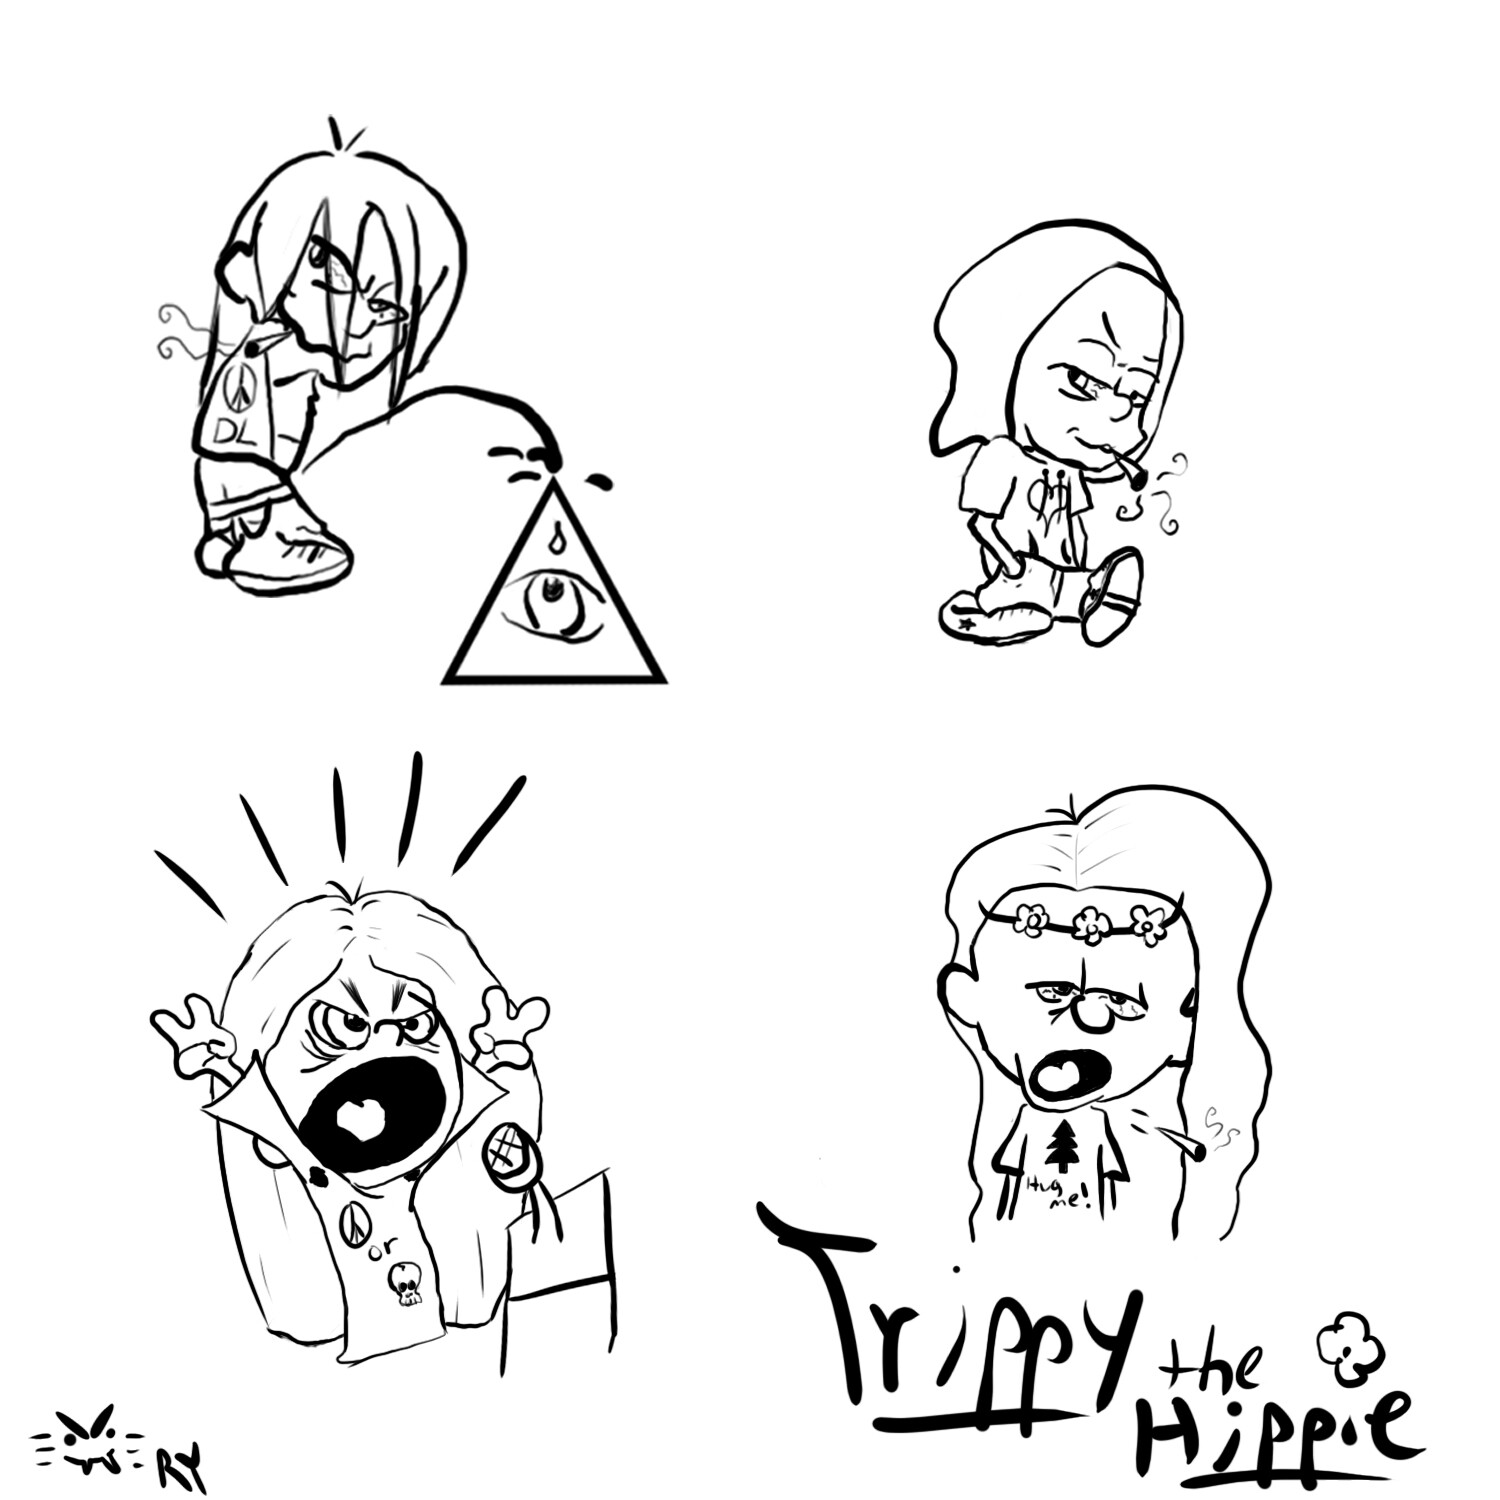 Various-haired variations of Trippy the Hippy